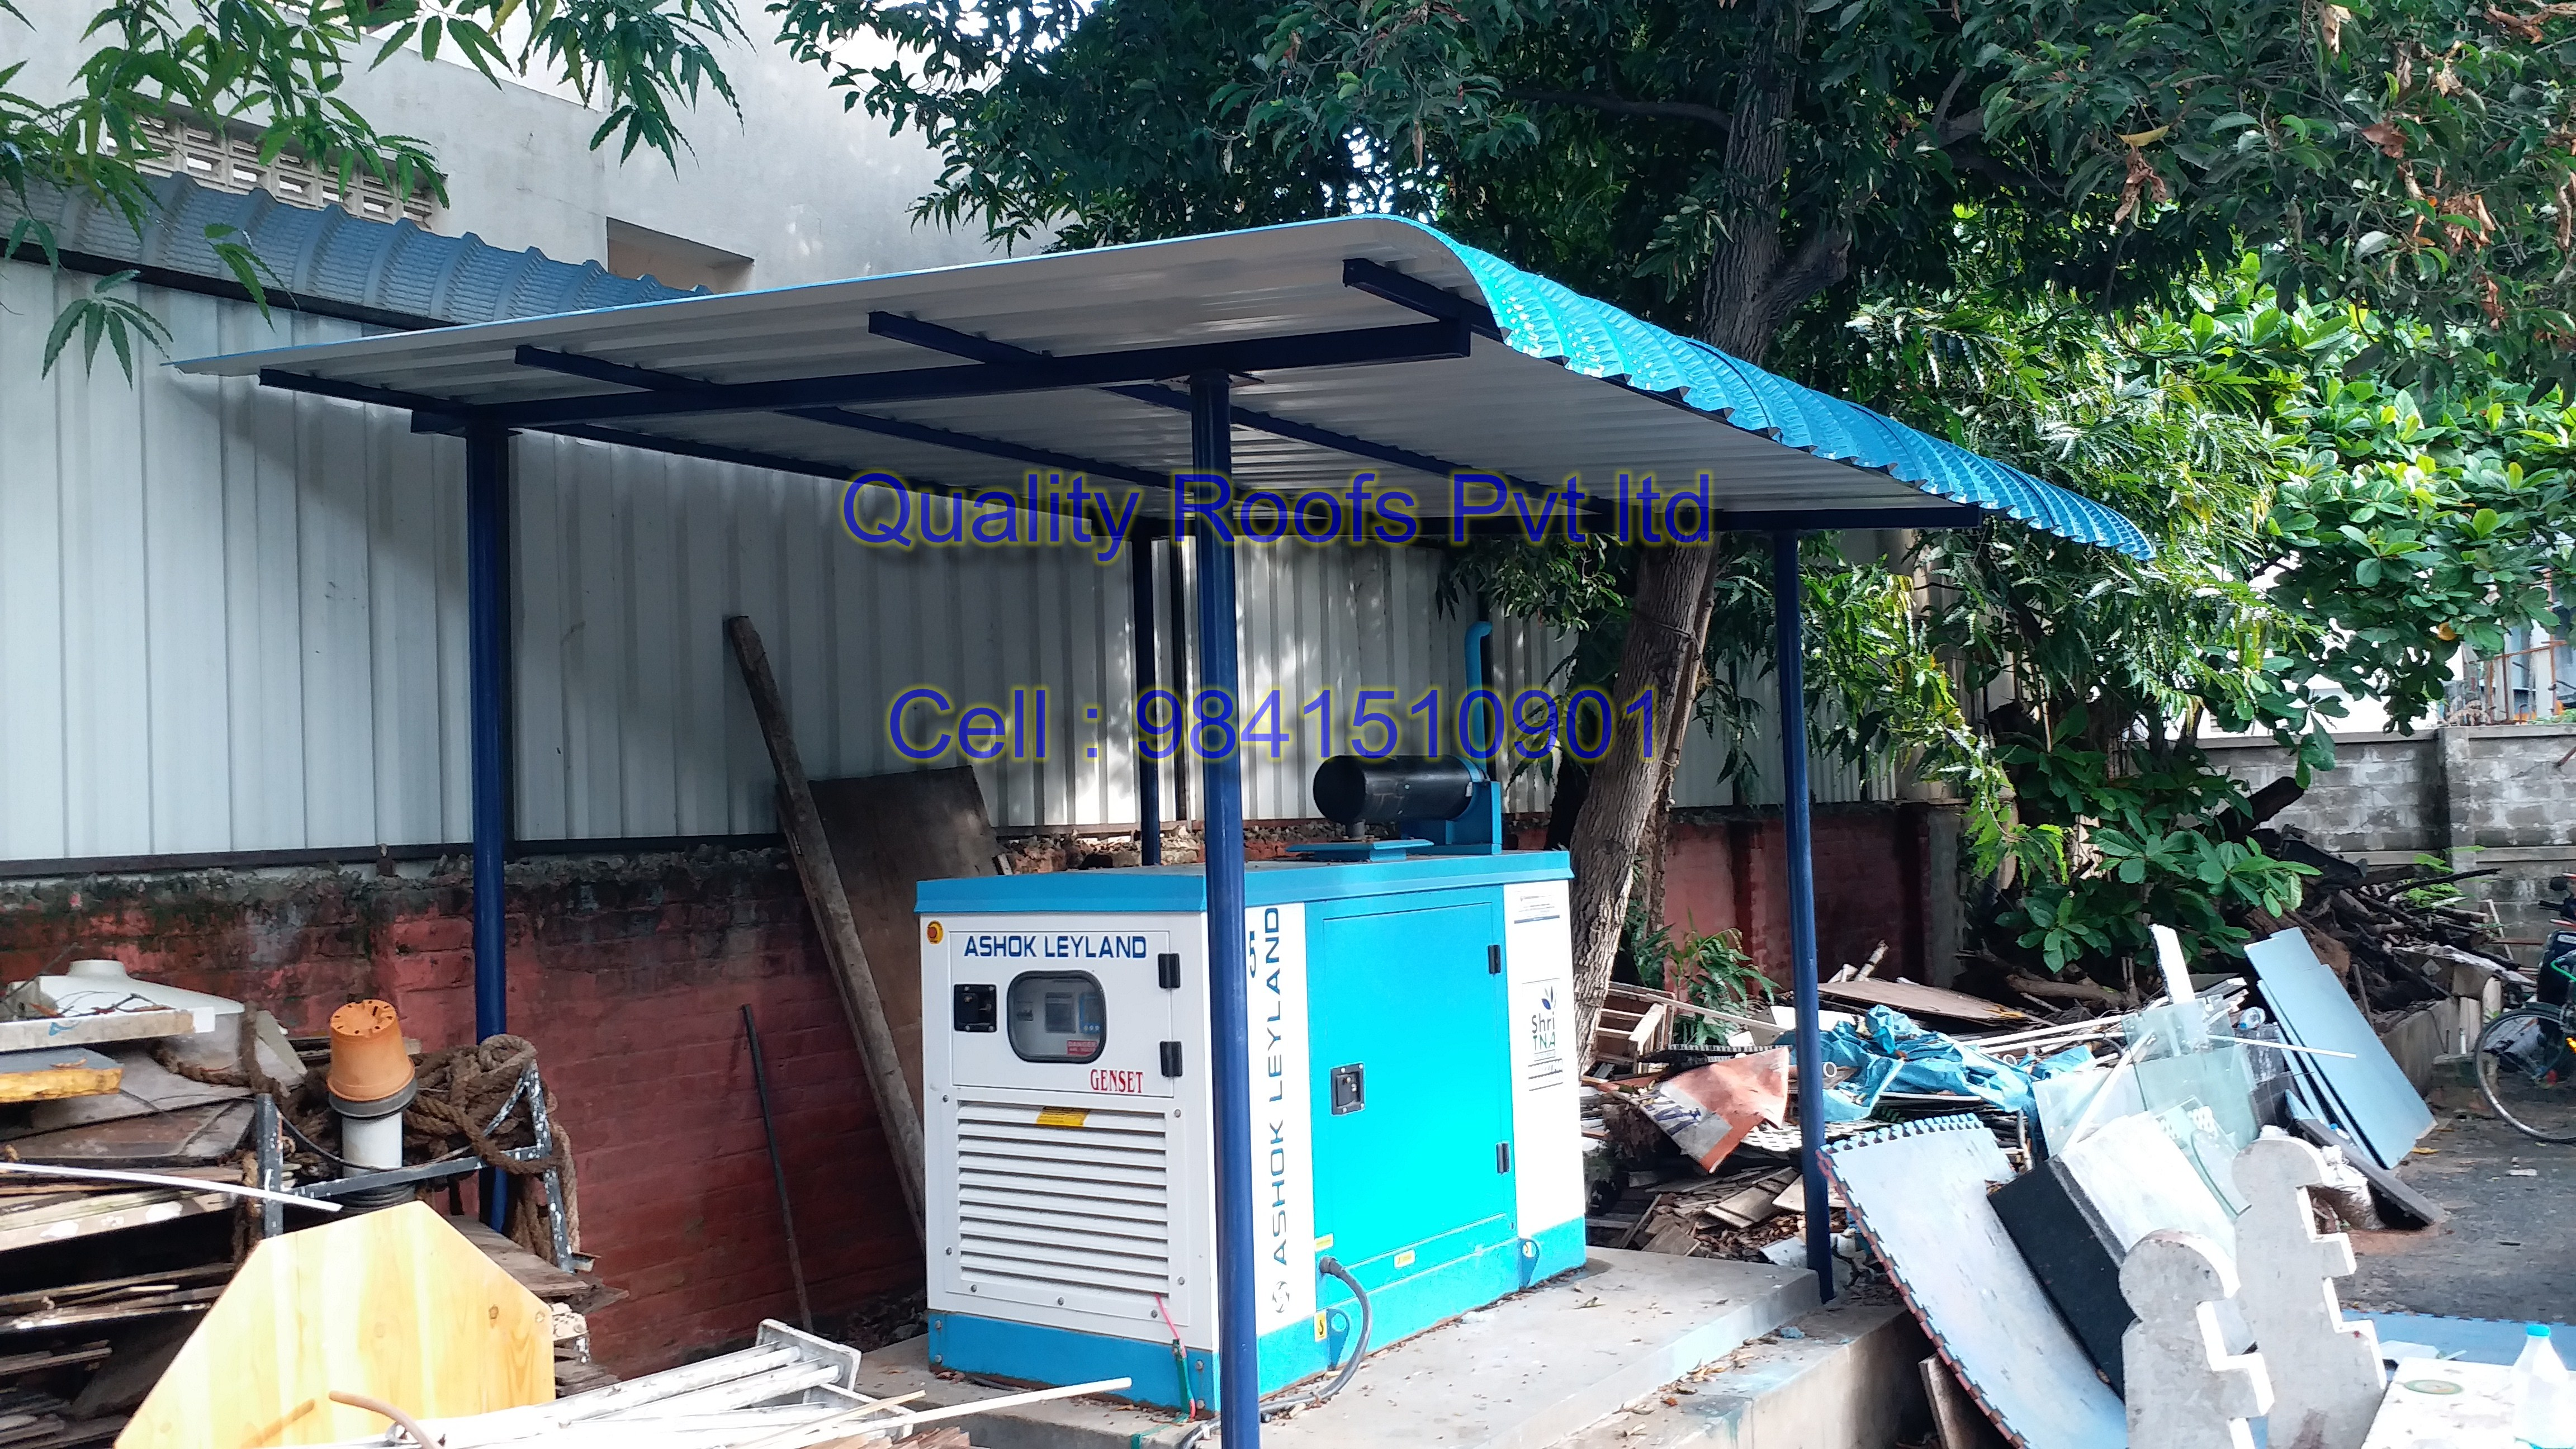 Turnkey Roofing Contractors In Chennai | Quality Roofs Pvt Ltd | Turnkey Roofing Contractors in Chennai, Metal Roofing Construction, Warehouse Shed Construction In Chennai, Metal Roofing Prices In Chennai, Badminton Roofing - GL57066